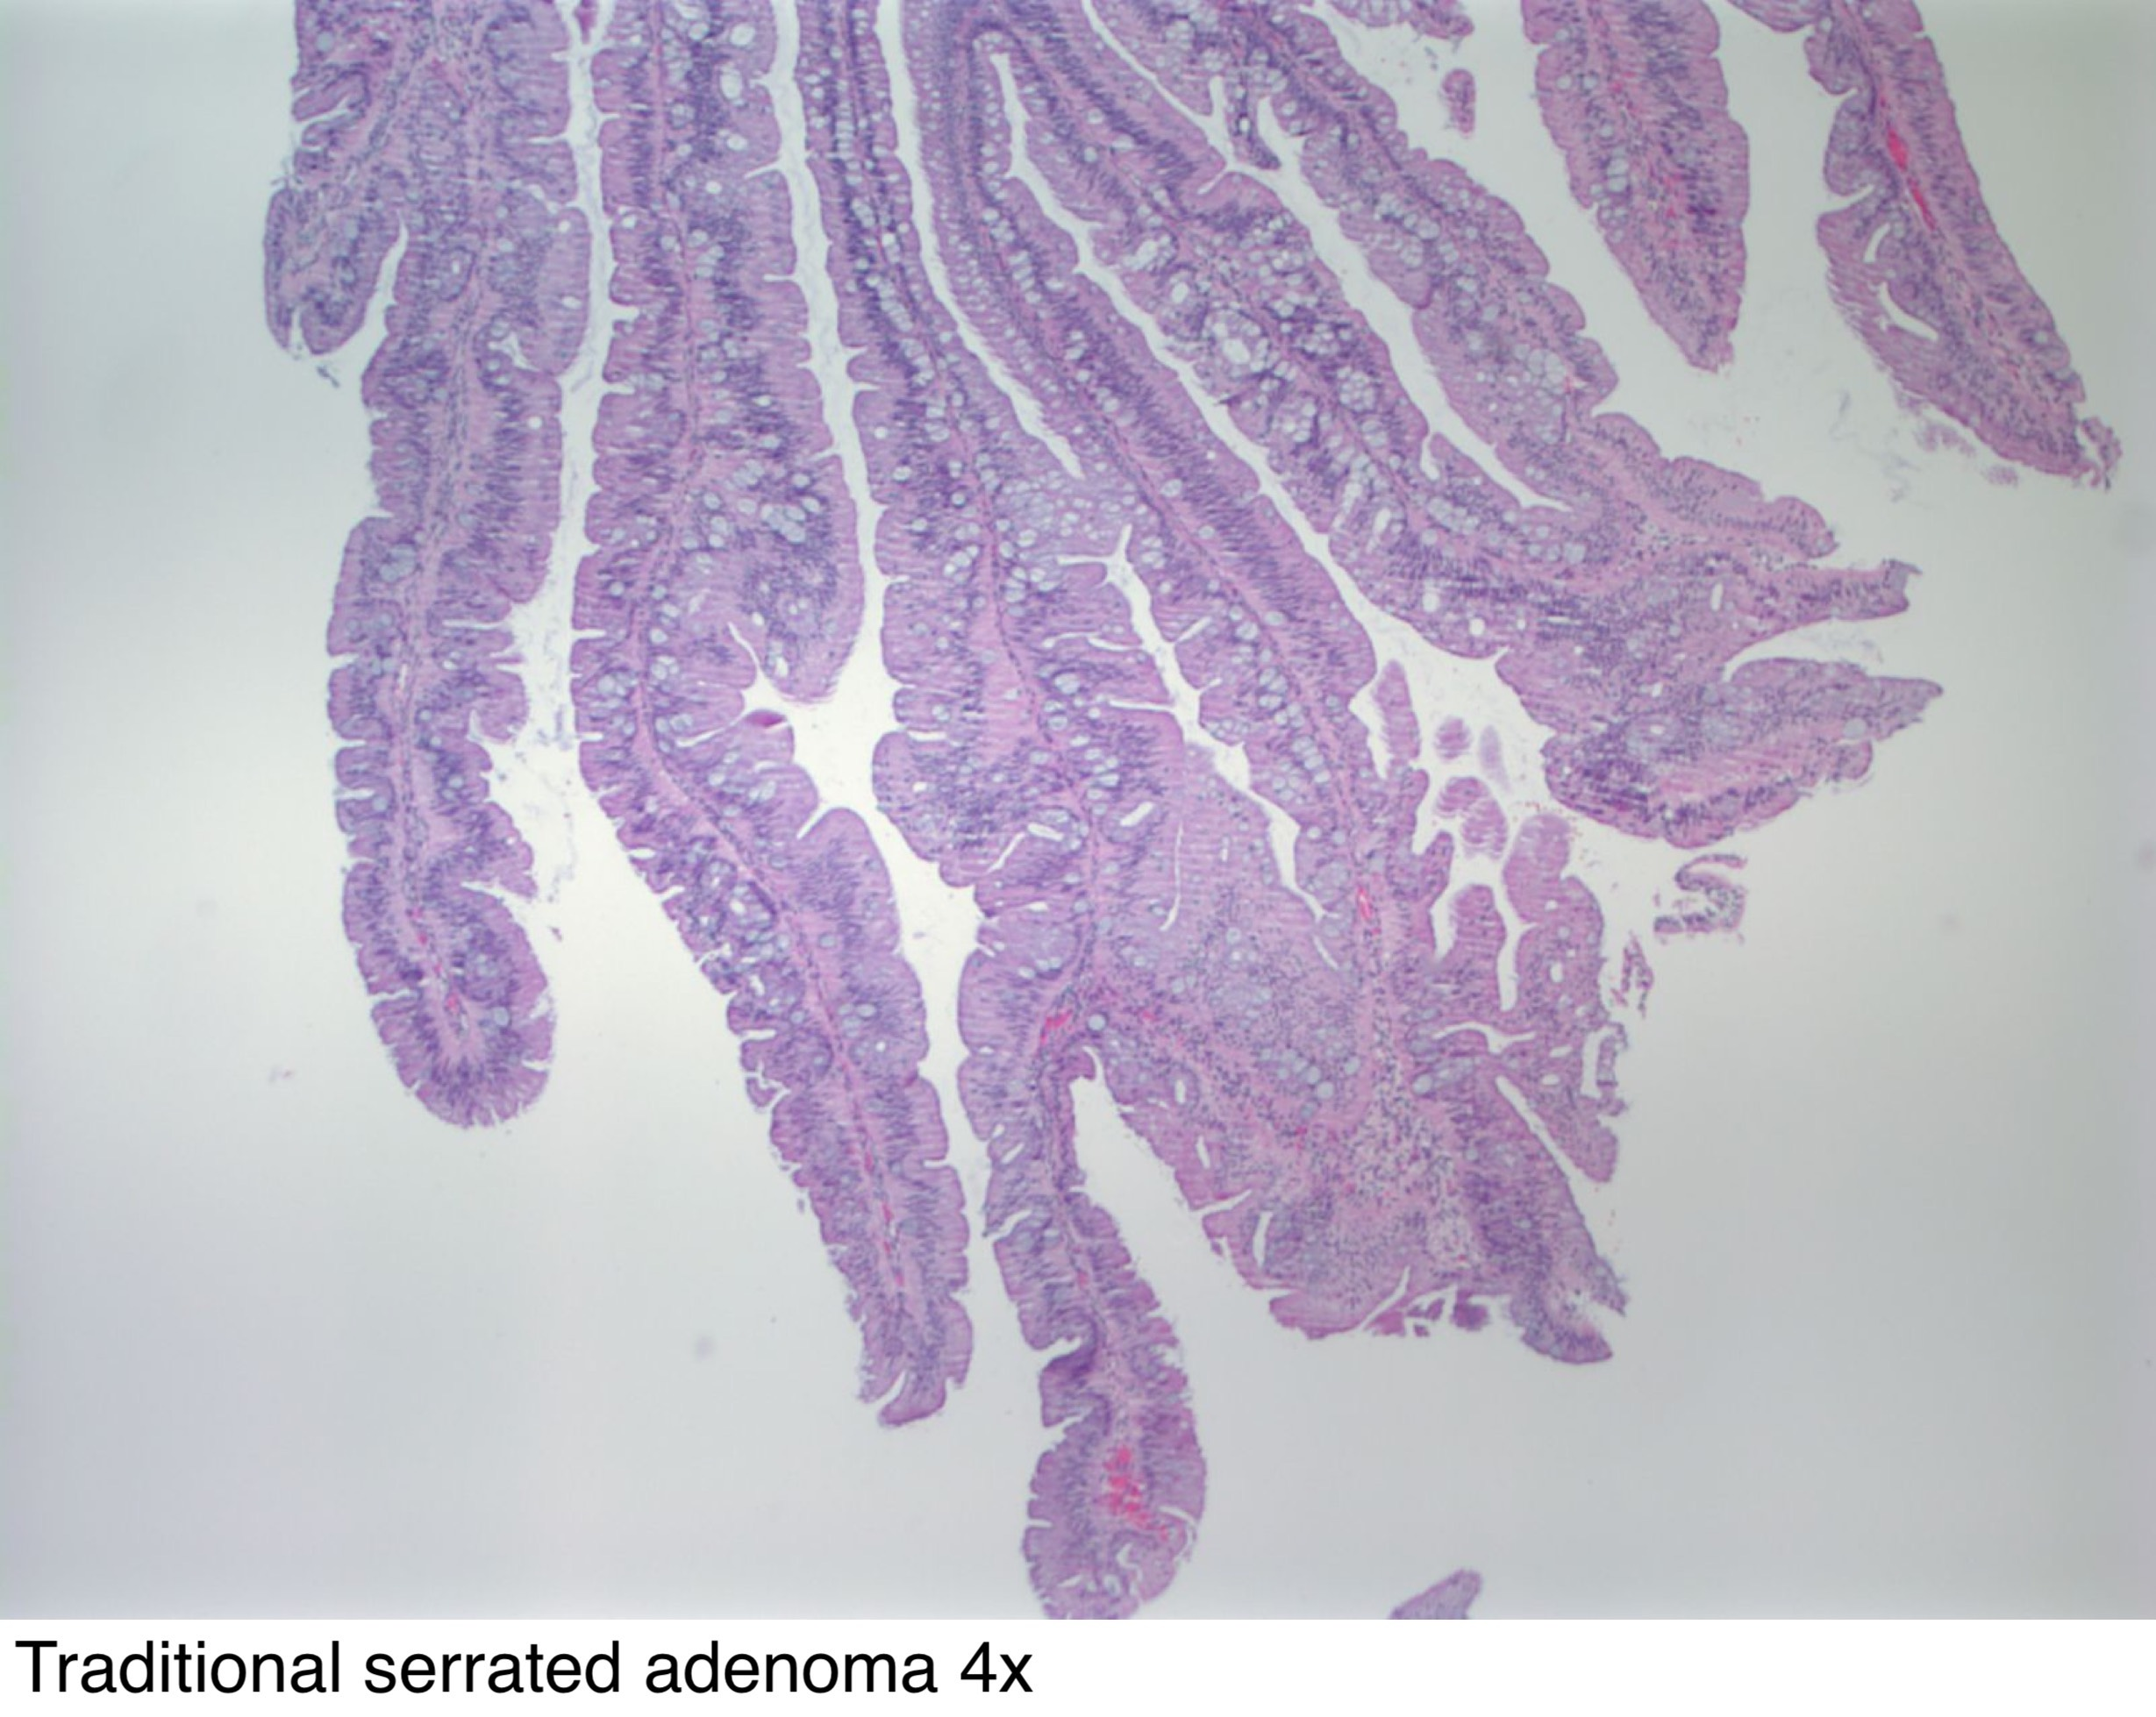 Pathology Outlines - Adenoma - general